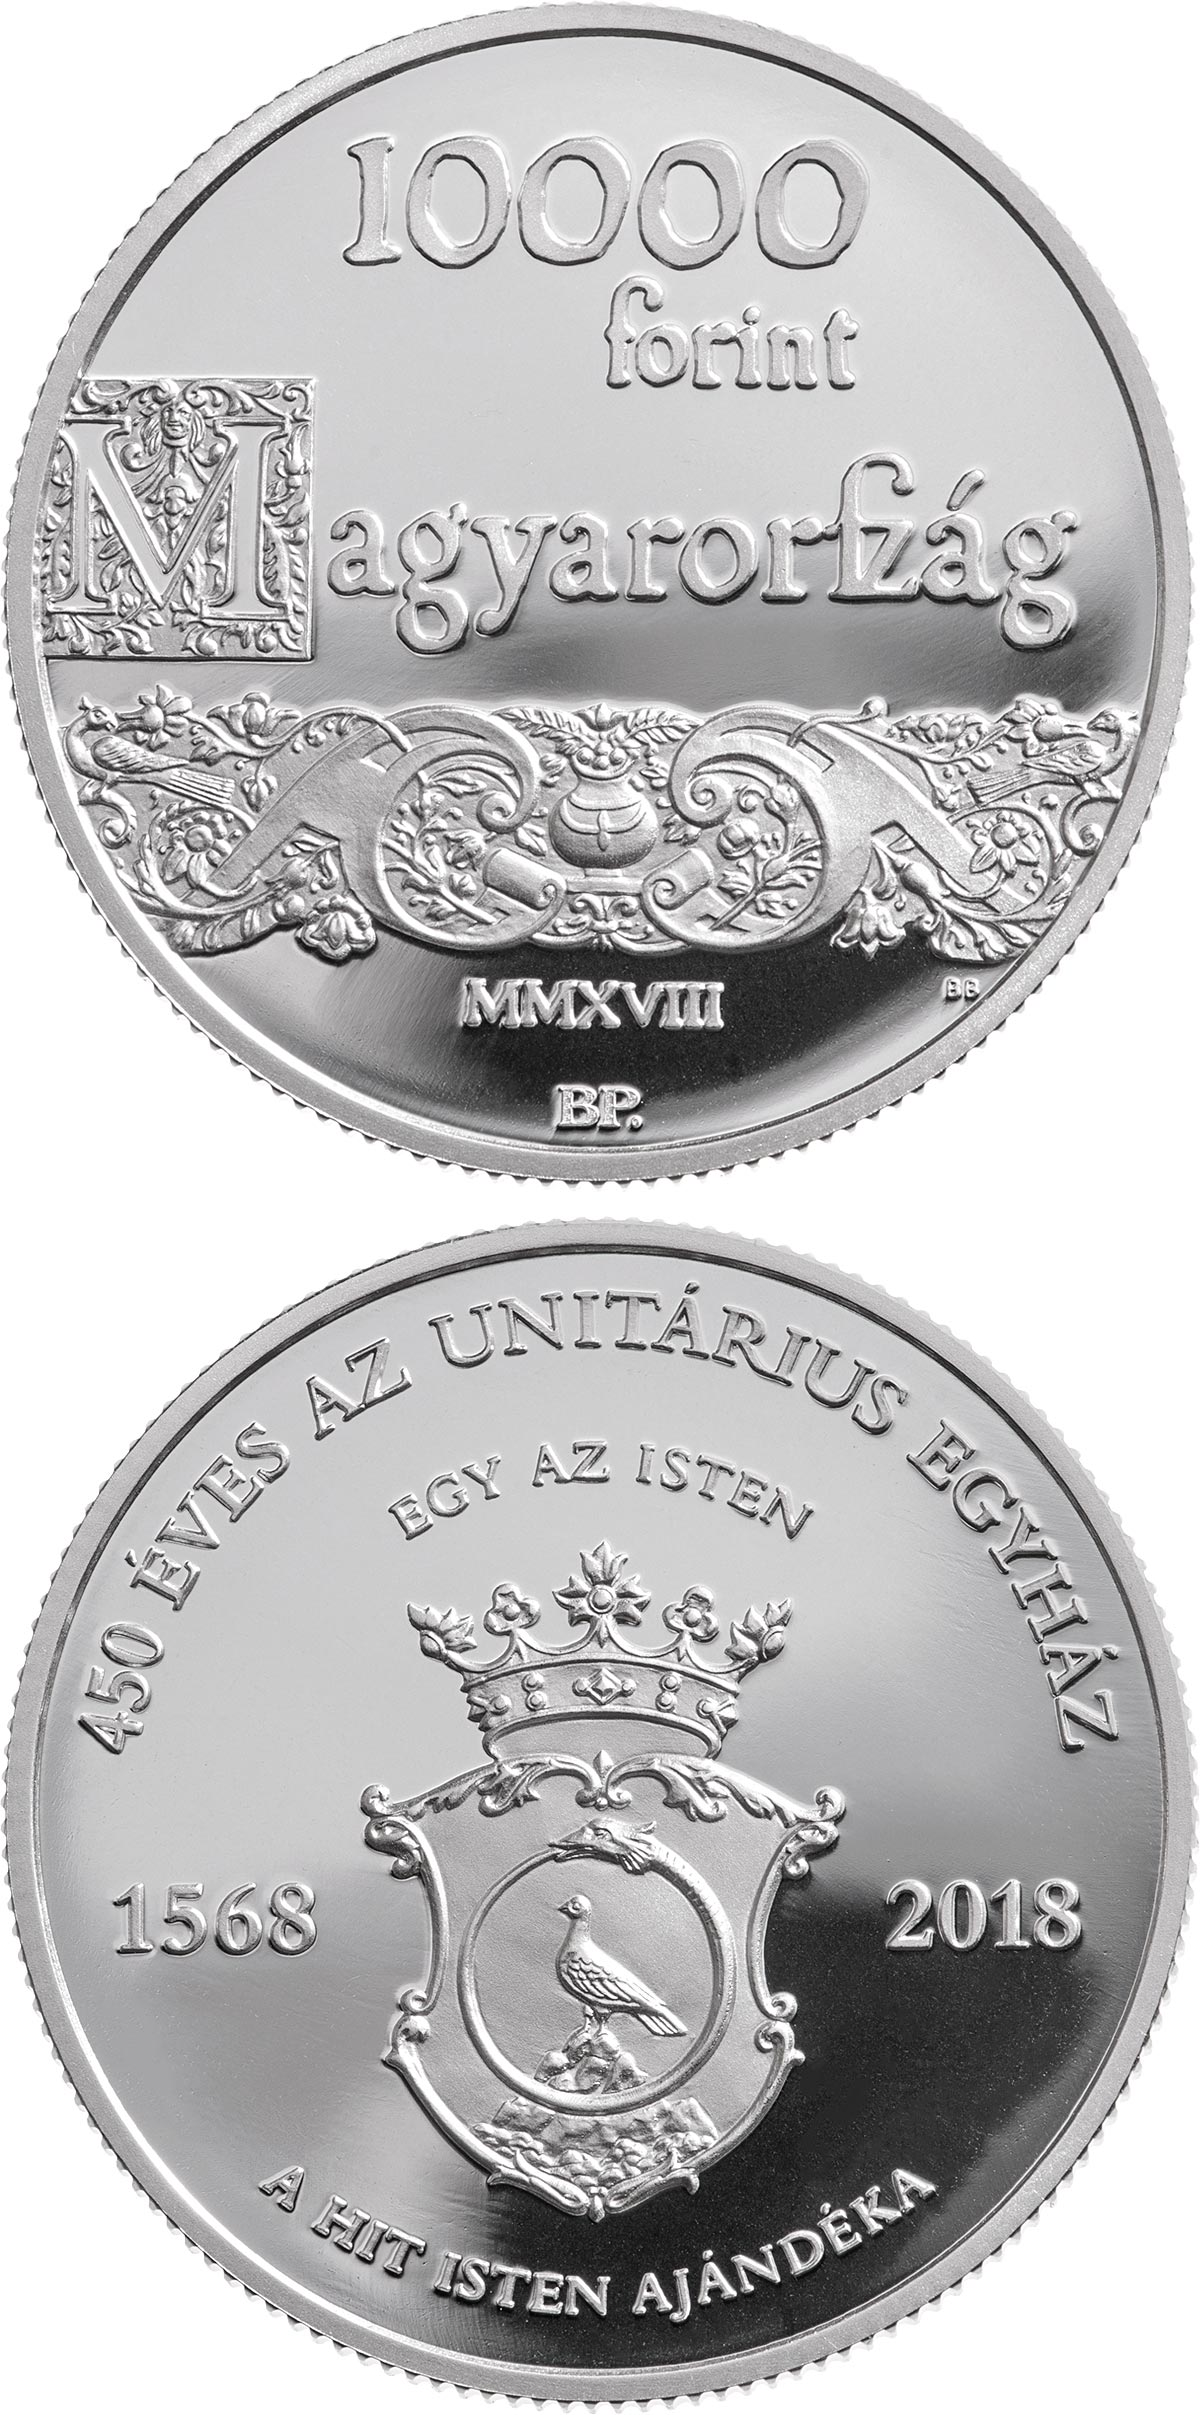 Image of 10000 forint coin - 450th Anniversary of the Unitarian Church | Hungary 2018.  The Silver coin is of Proof quality.